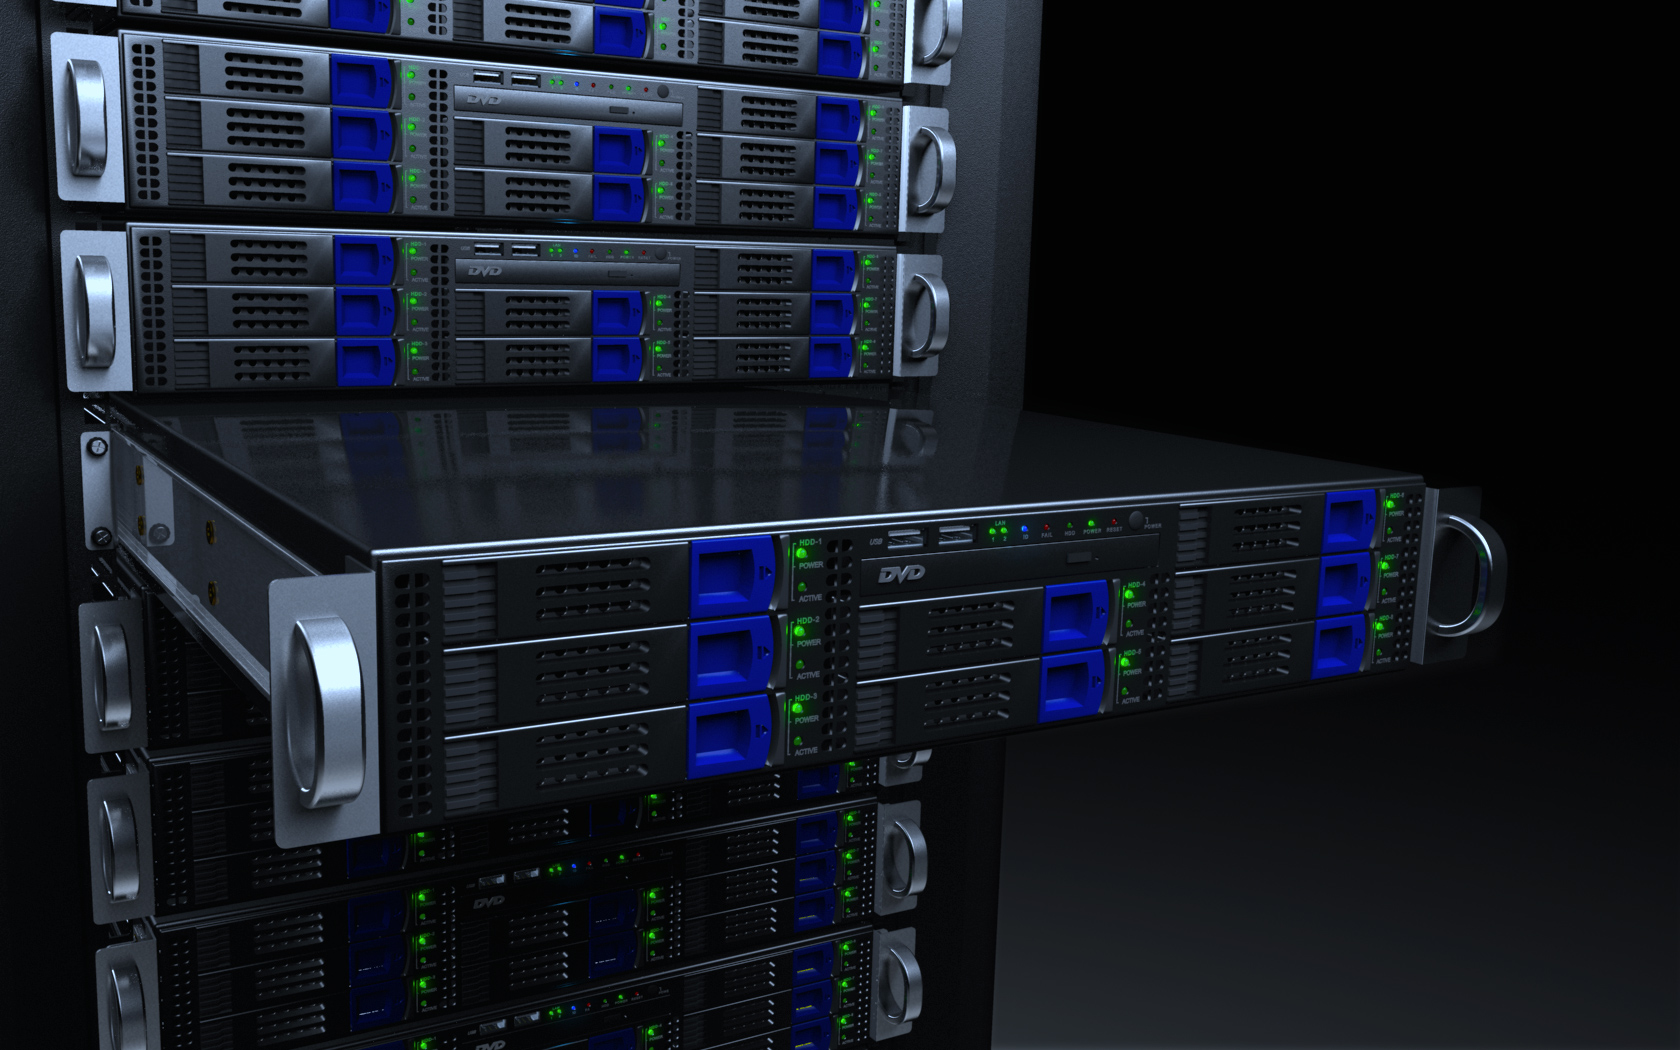 will provide you with a fully dedicated server with  Intel® Xeon® X3440 12GB ECC RAM with cpanel